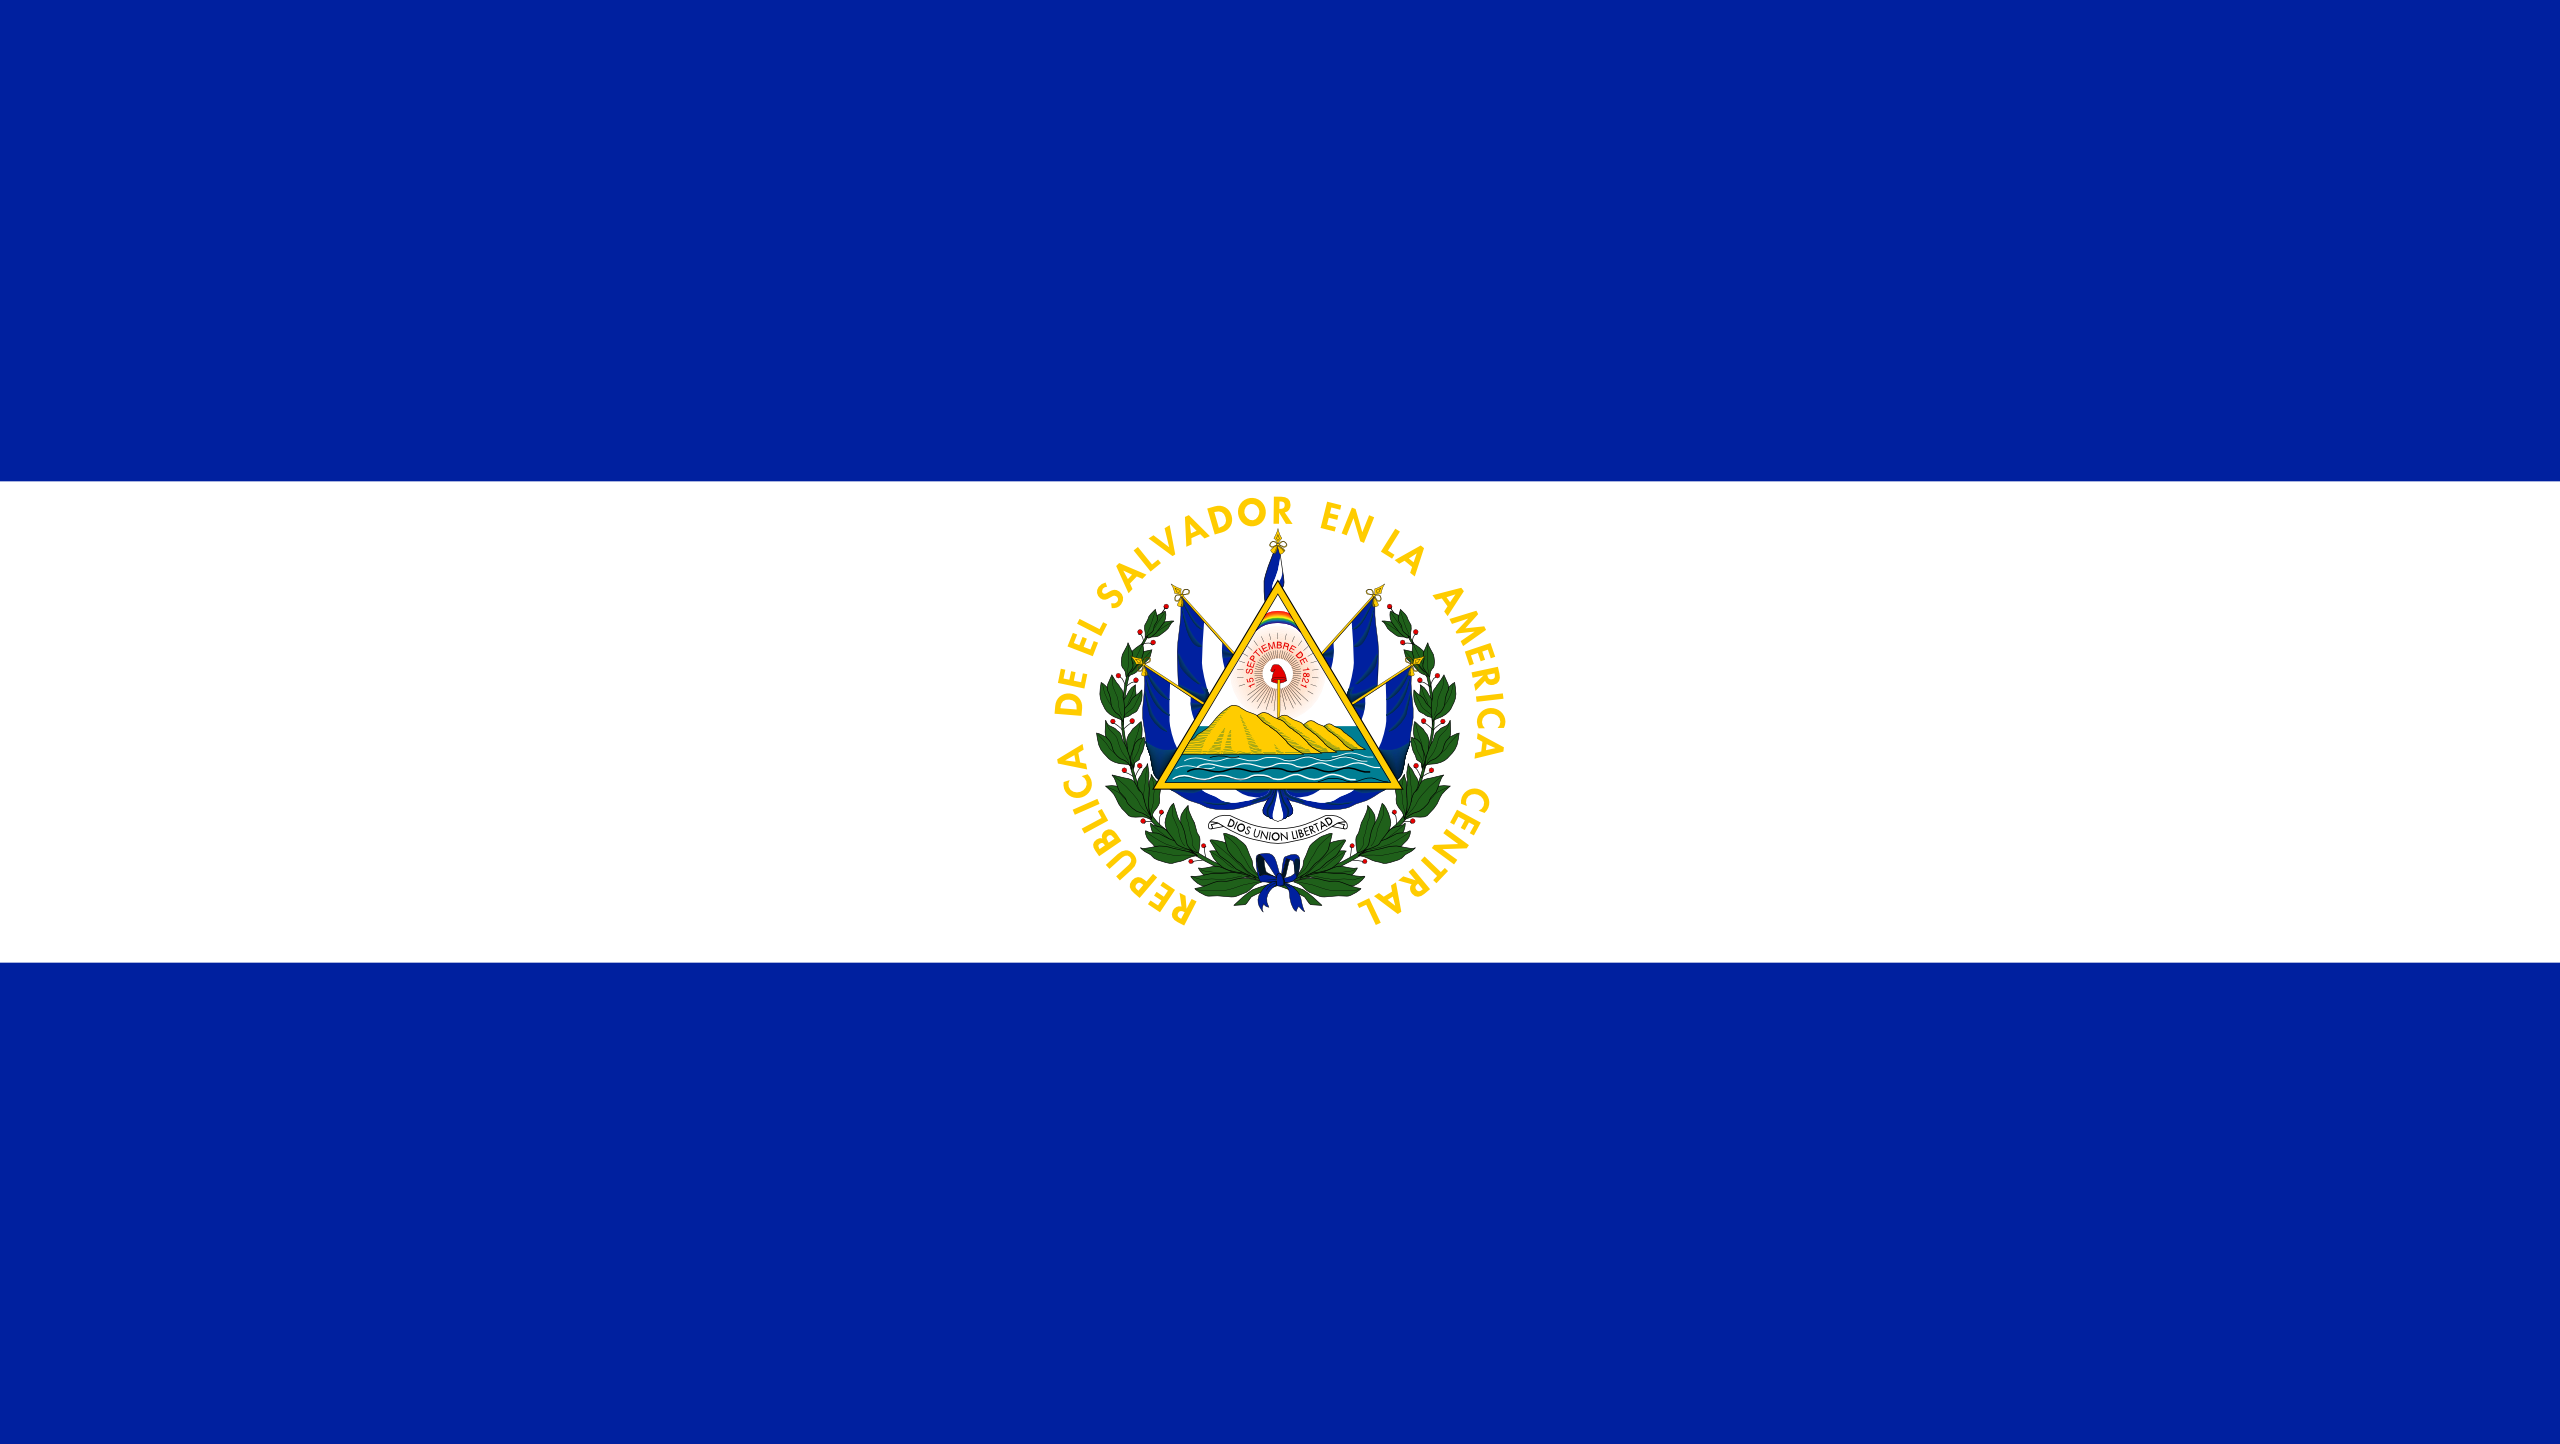 El Salvador Flag and Description